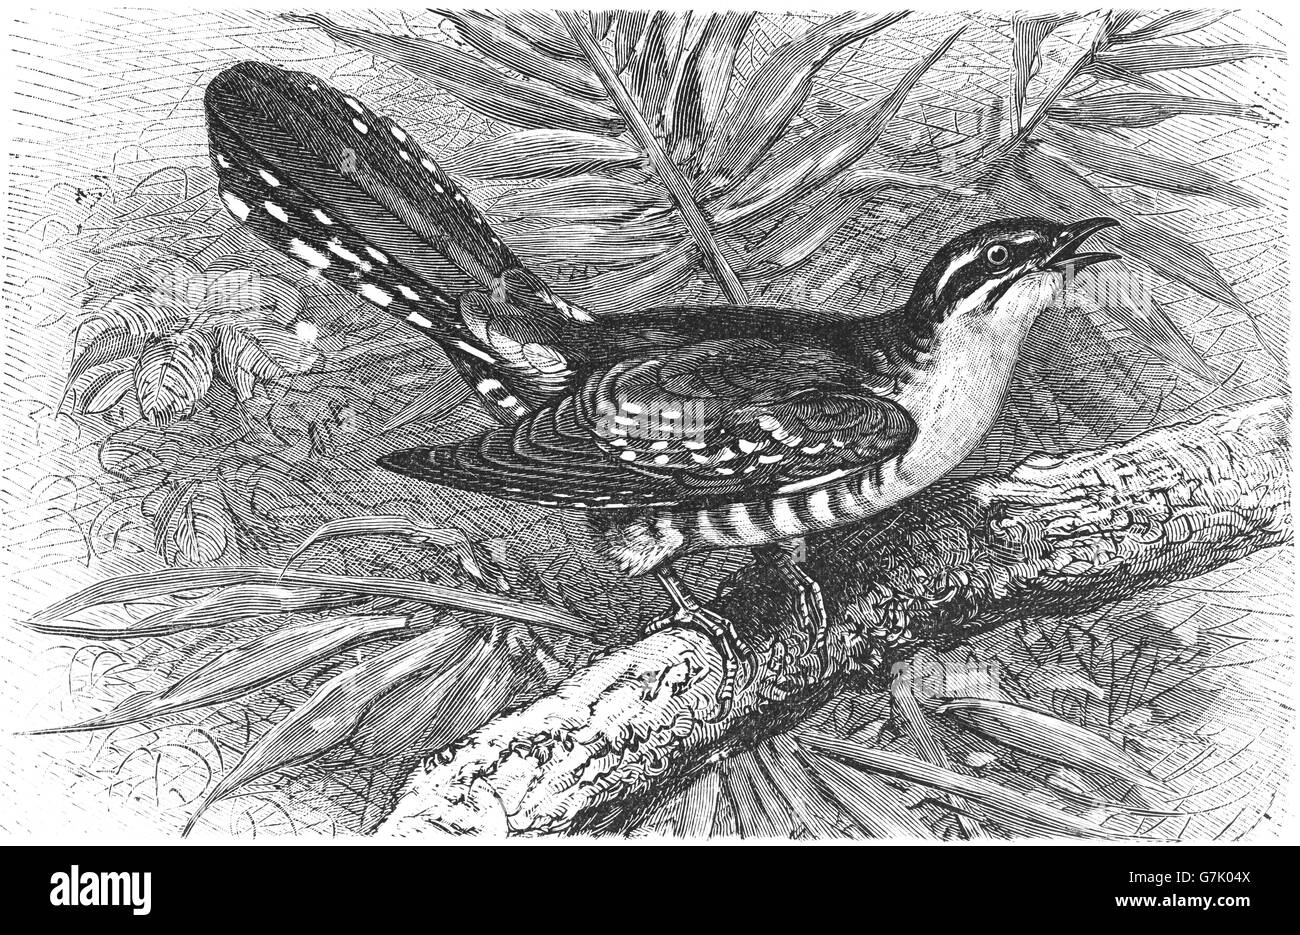 Diederik cuckoo, Chrysococcyx caprius, illustration from book dated 1904 - Stock Image